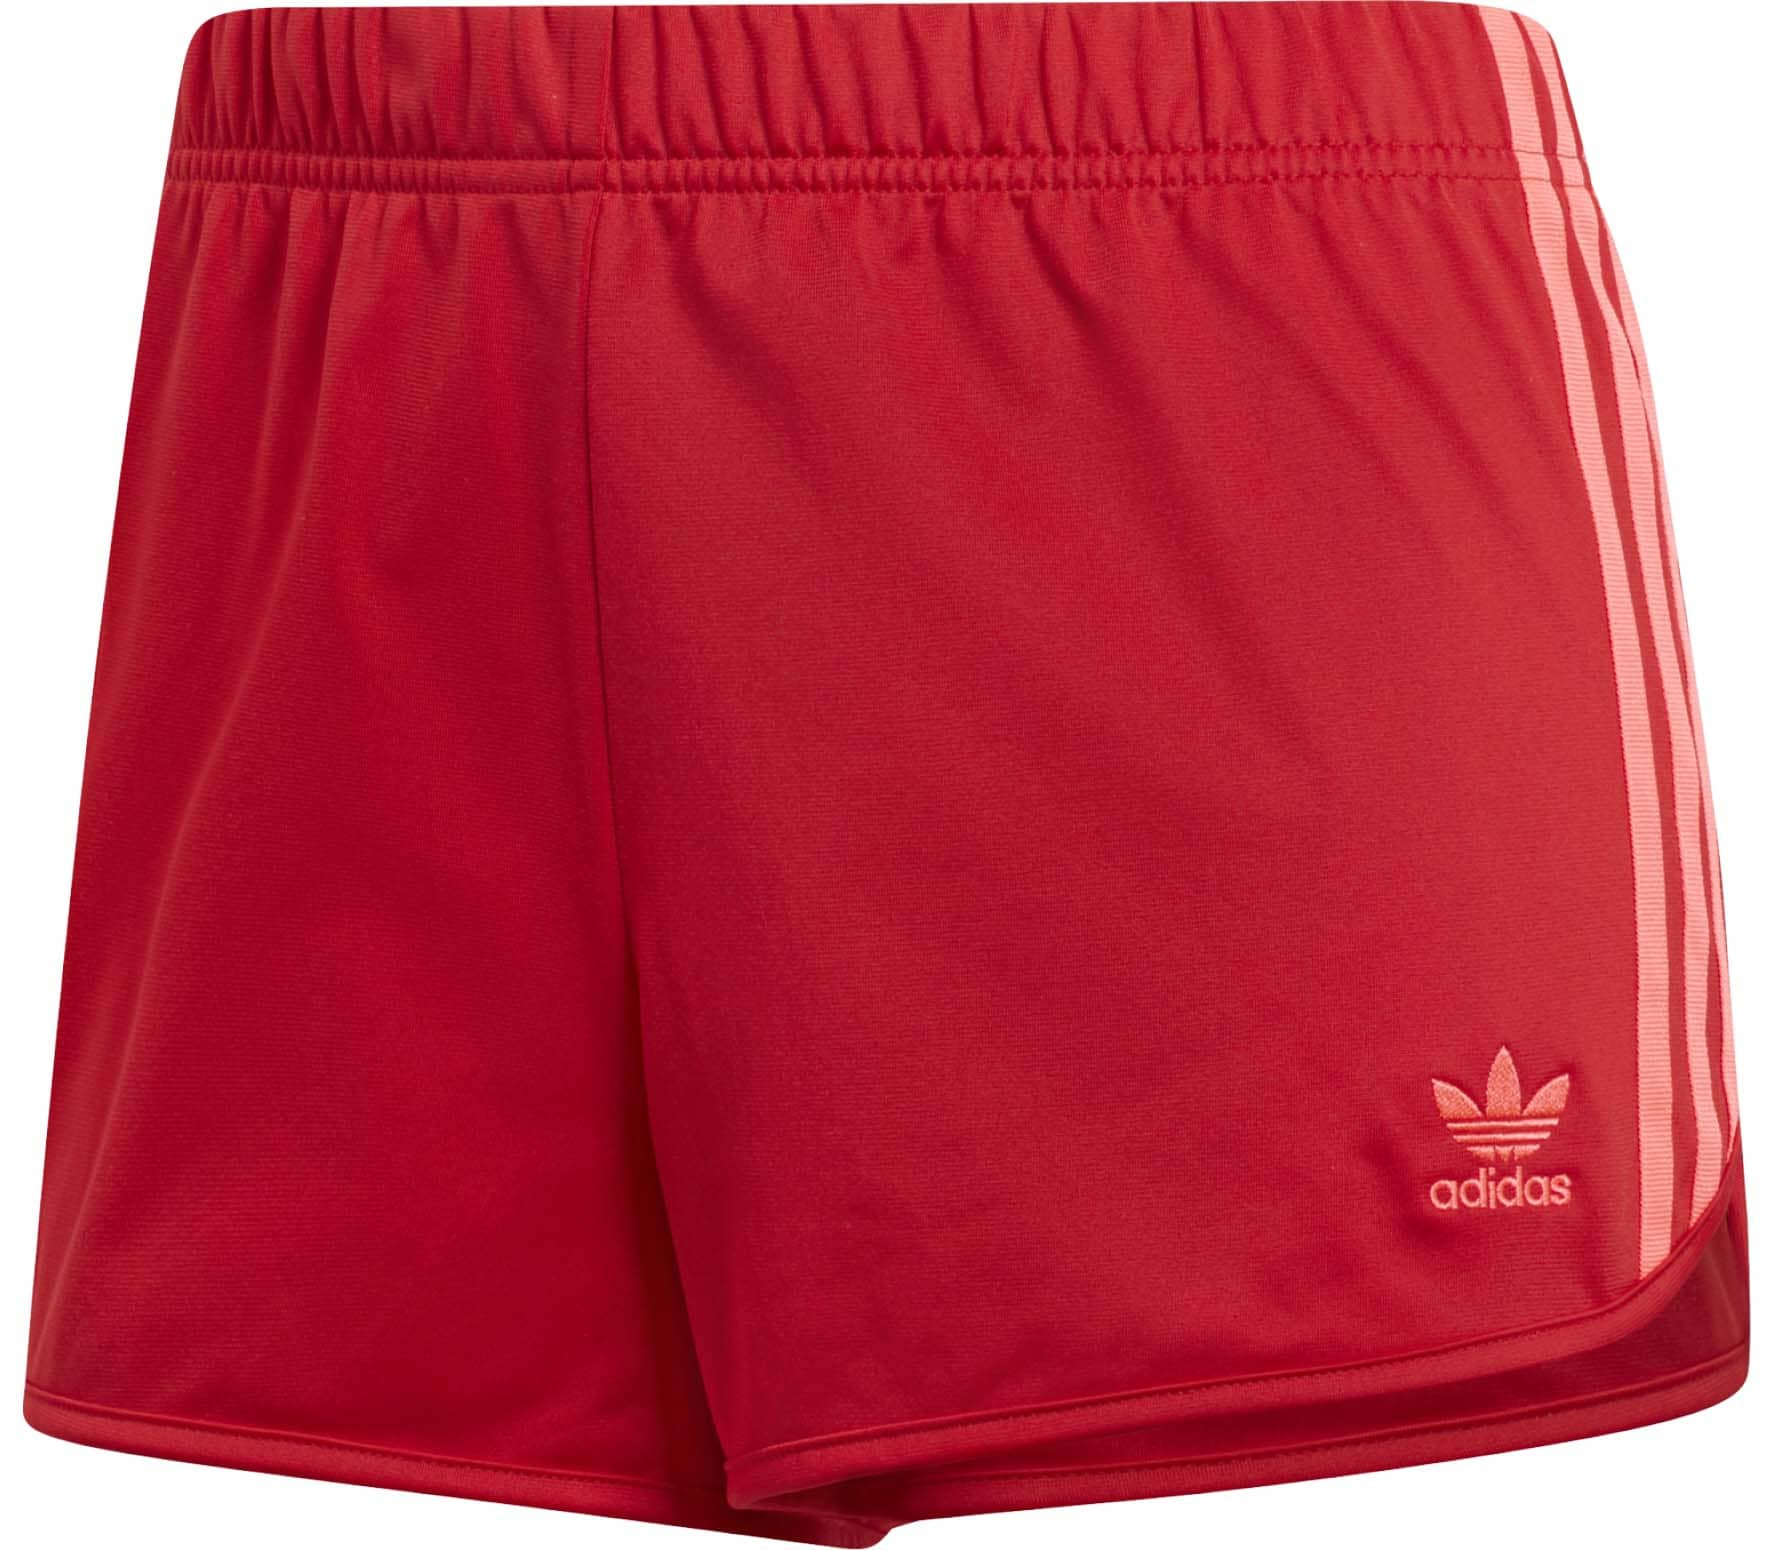 adidas Originals 3-Stripes Women Shorts red